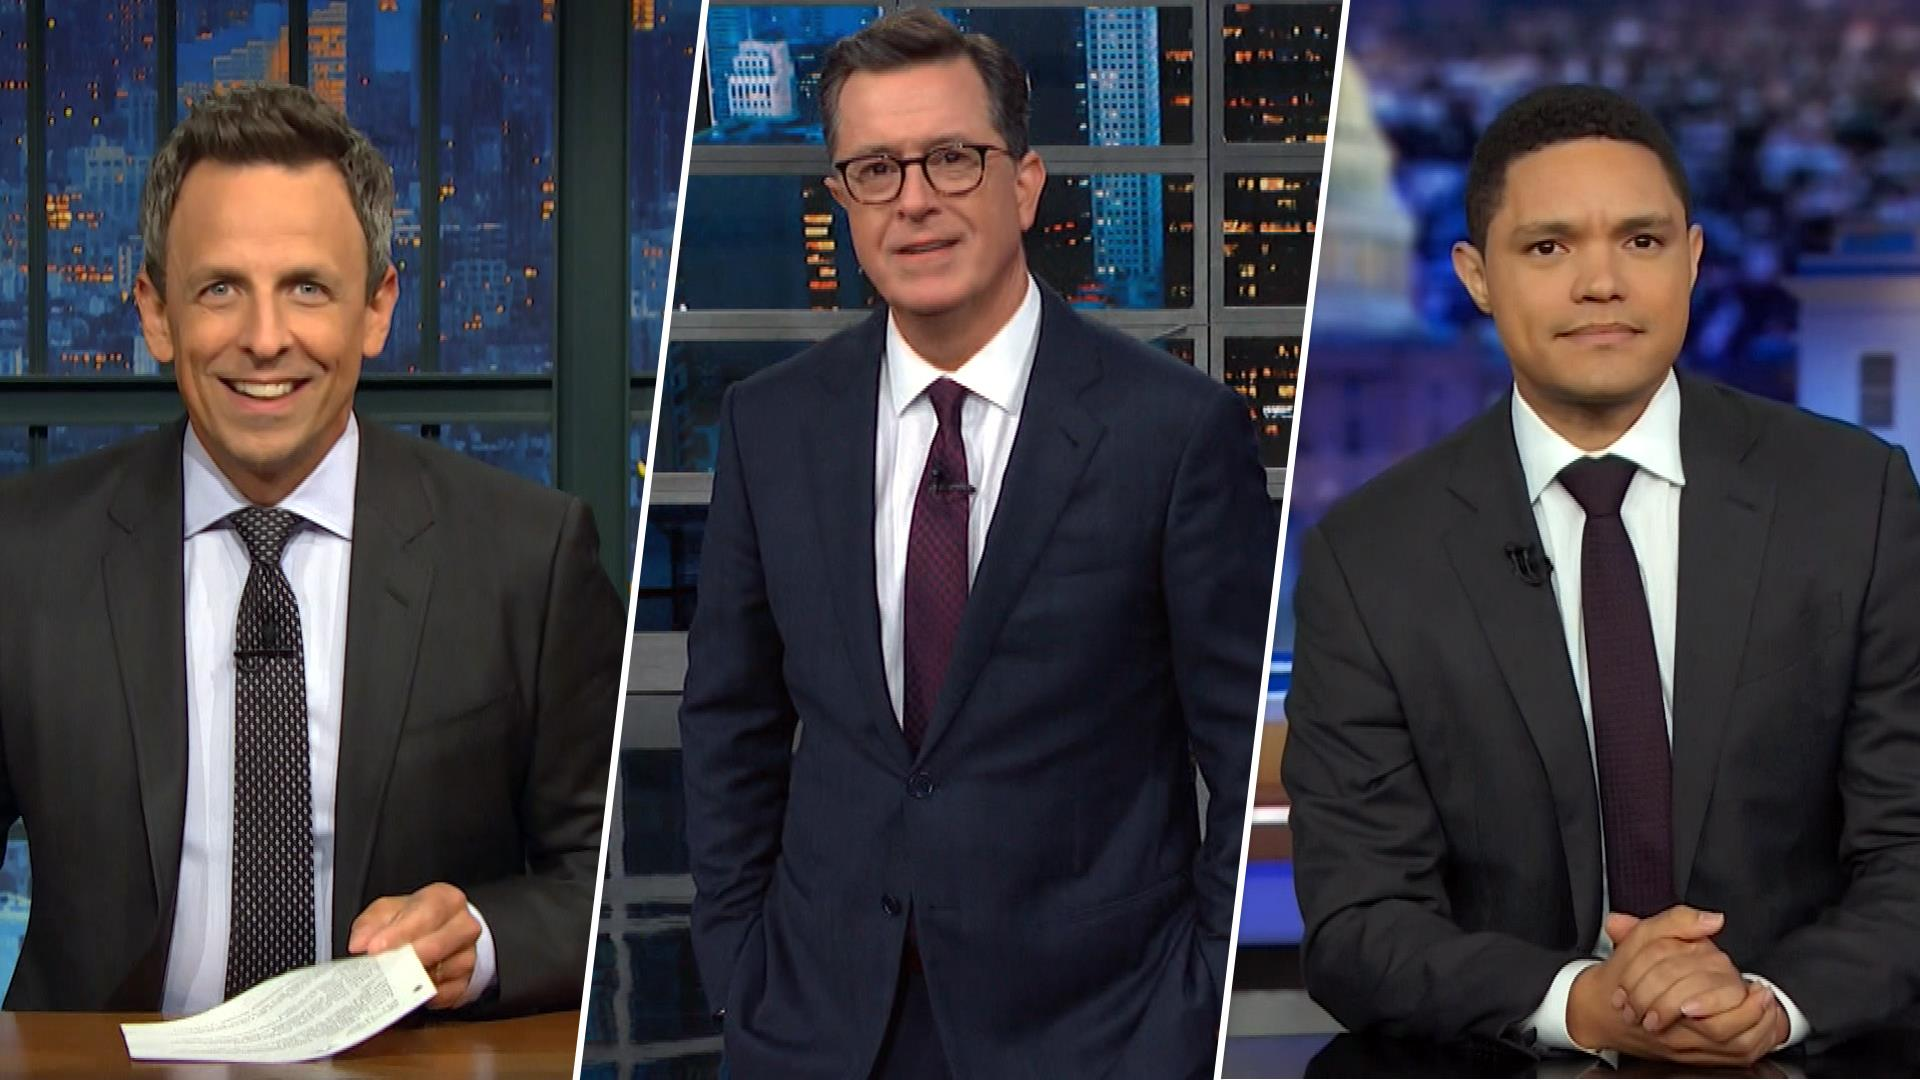 Watch late night comedians take on Trump impeachment inquiry